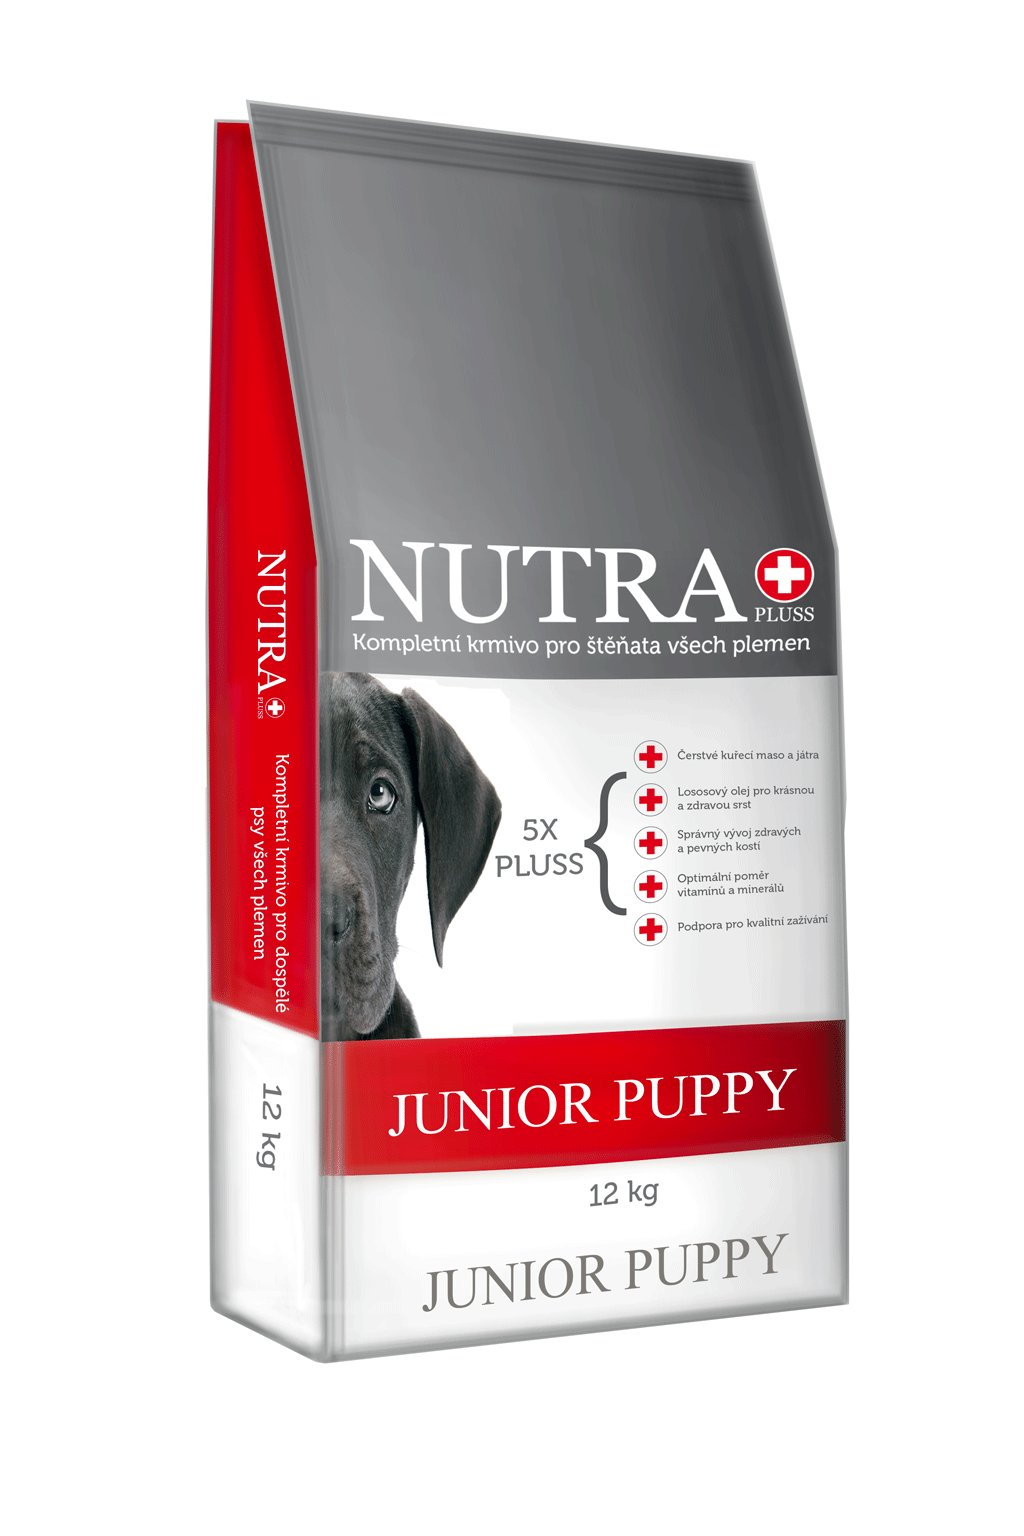 Mocup pytel JUNIOR PUPPY